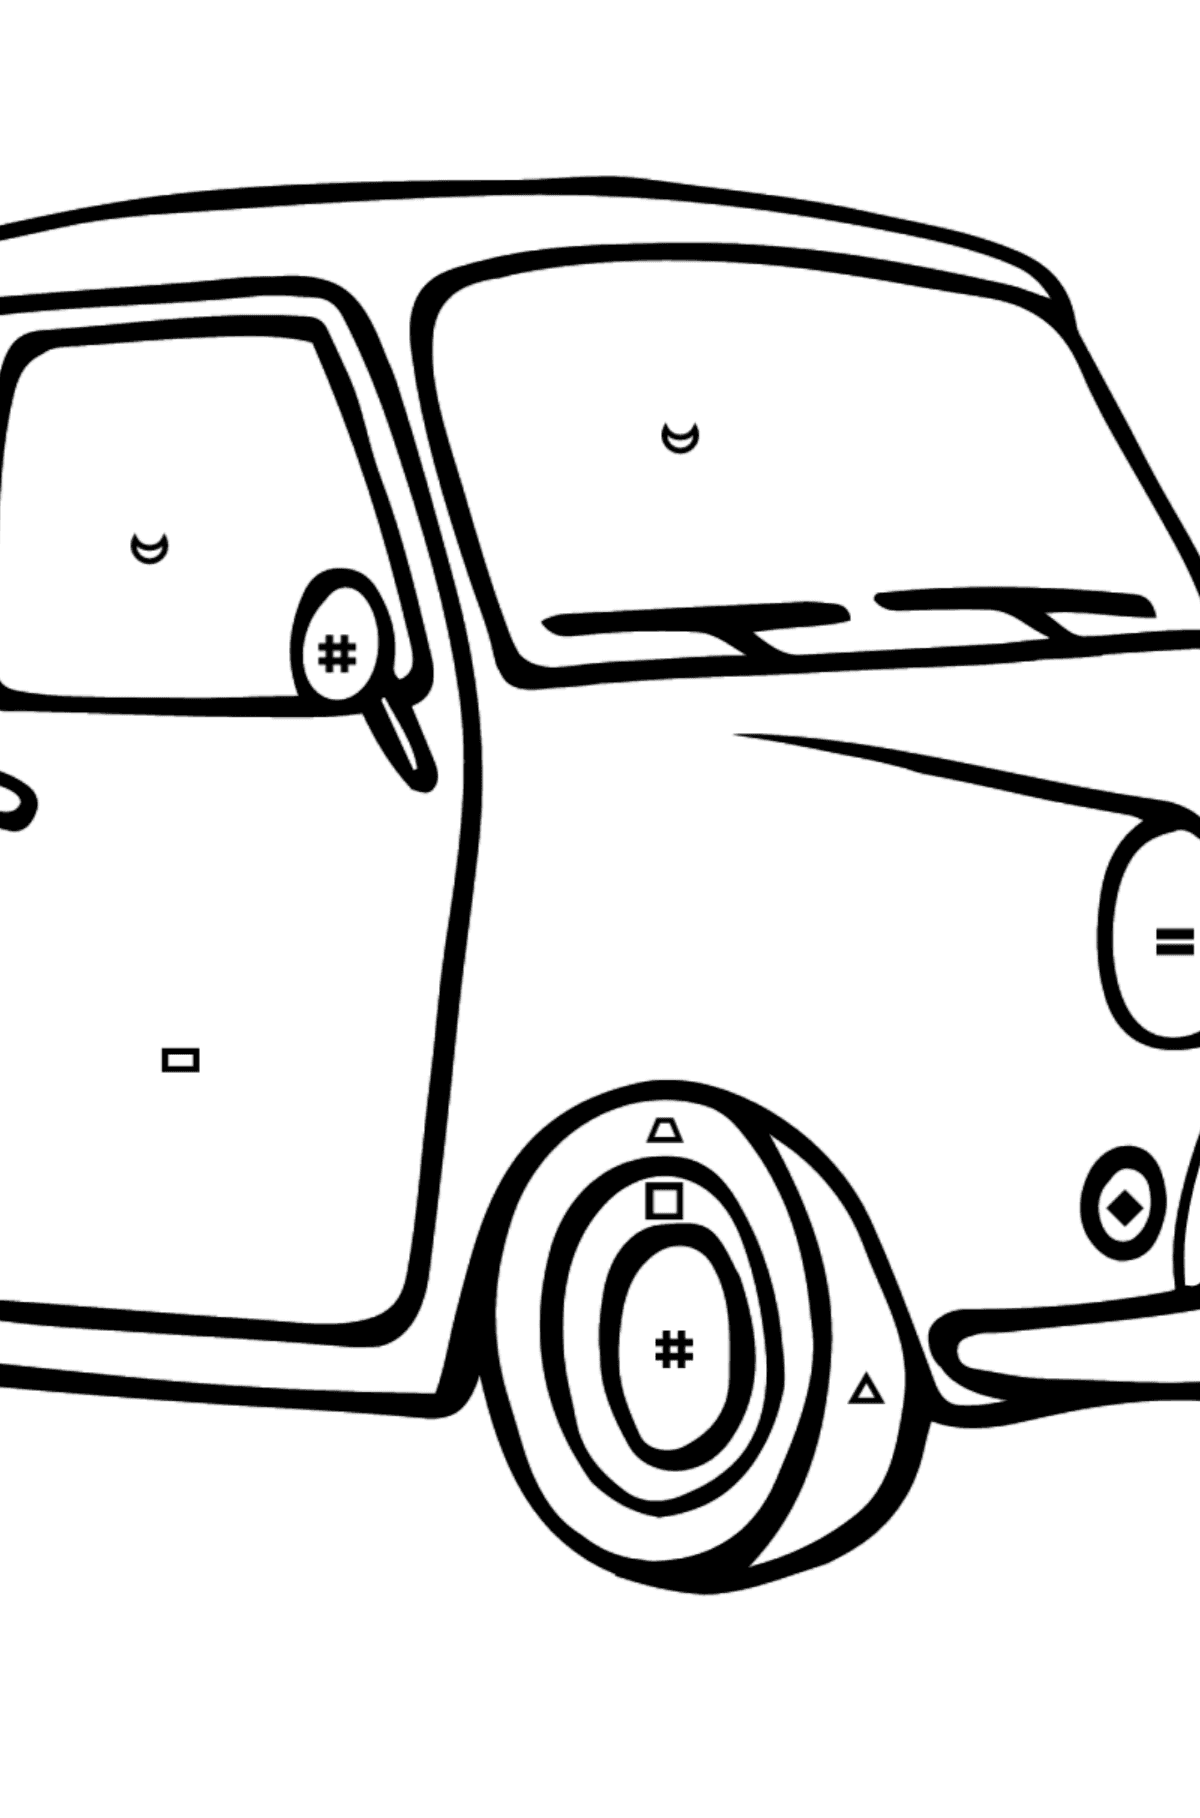 Fiat 500 coloring page (green car) - Coloring by Symbols and Geometric Shapes for Kids